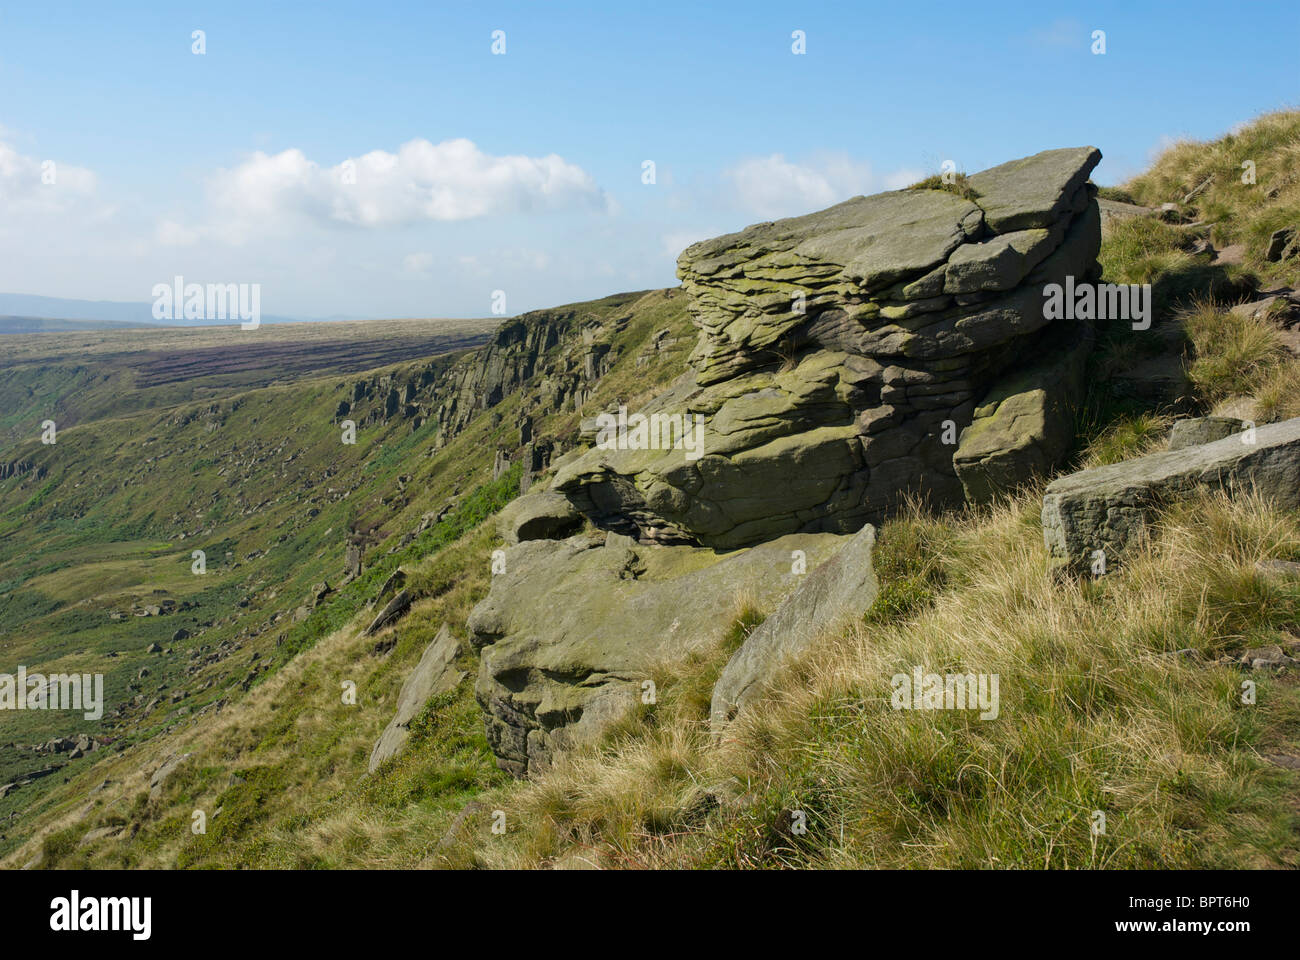 Laddow Rocks, a feature of the Pennine Way and the Crowden Valley, Peak National Park, Derbyshire, England UK - Stock Image